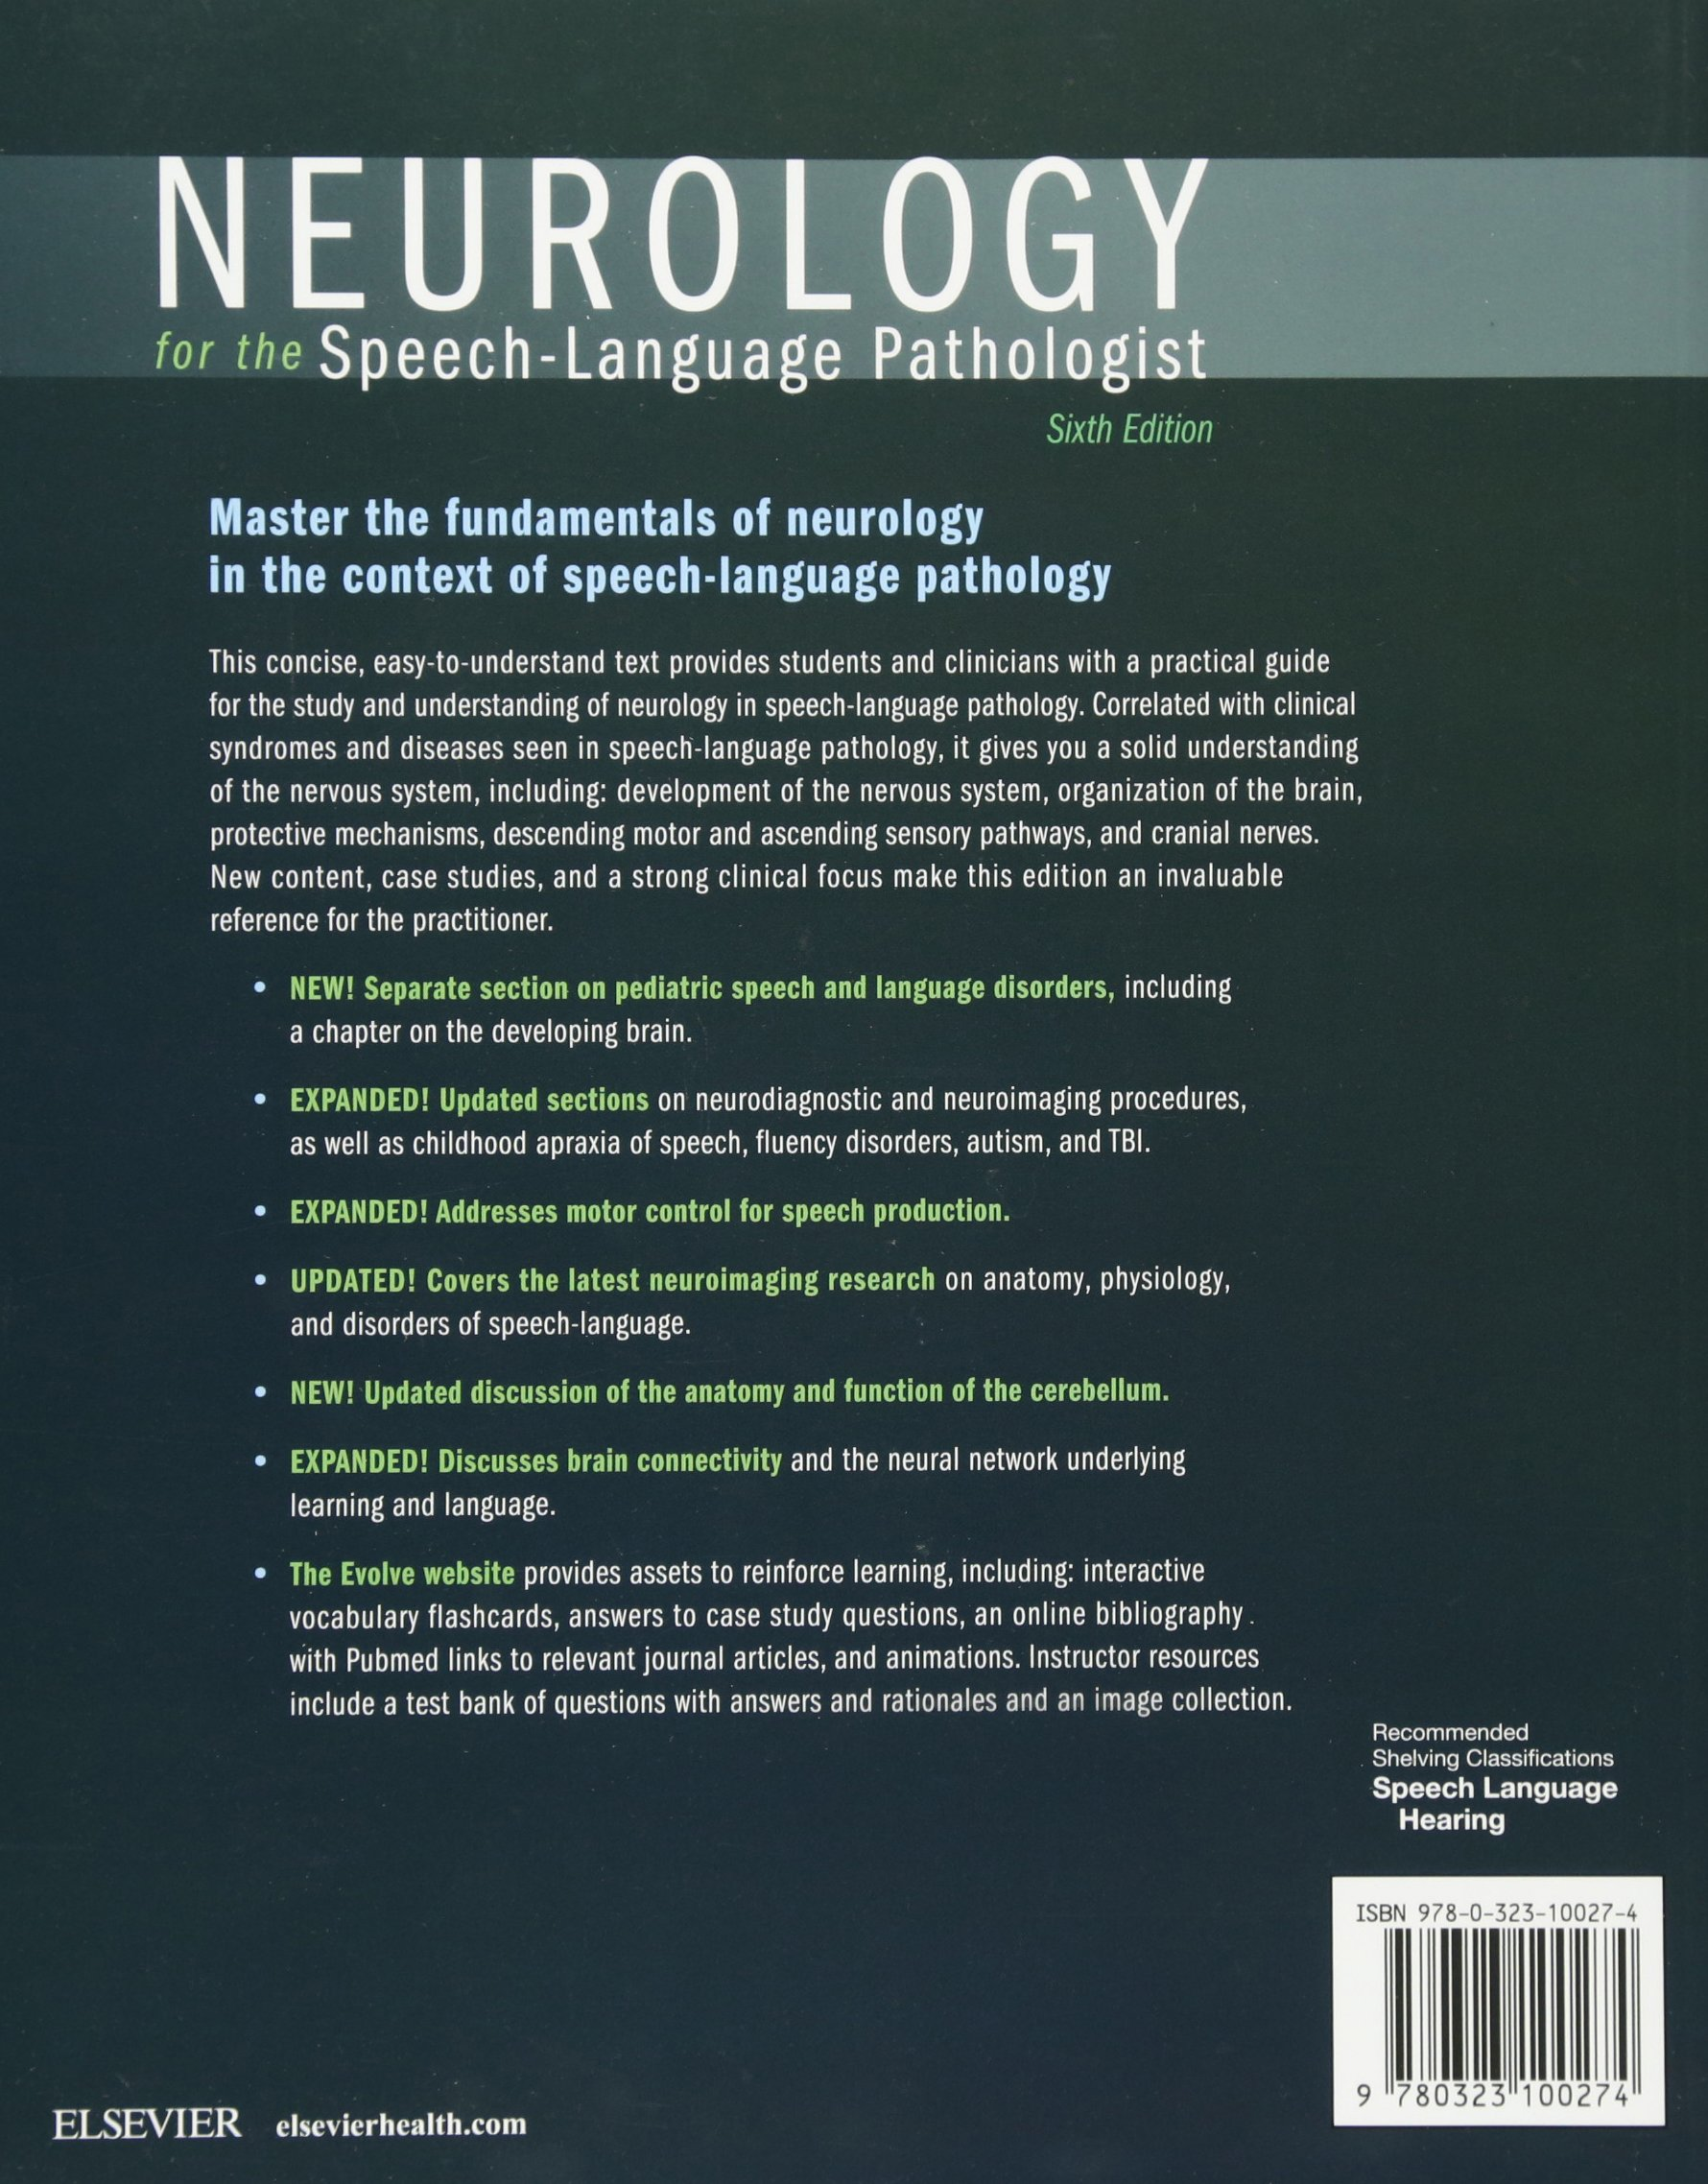 Neurology for the Speech-Language Pathologist by imusti